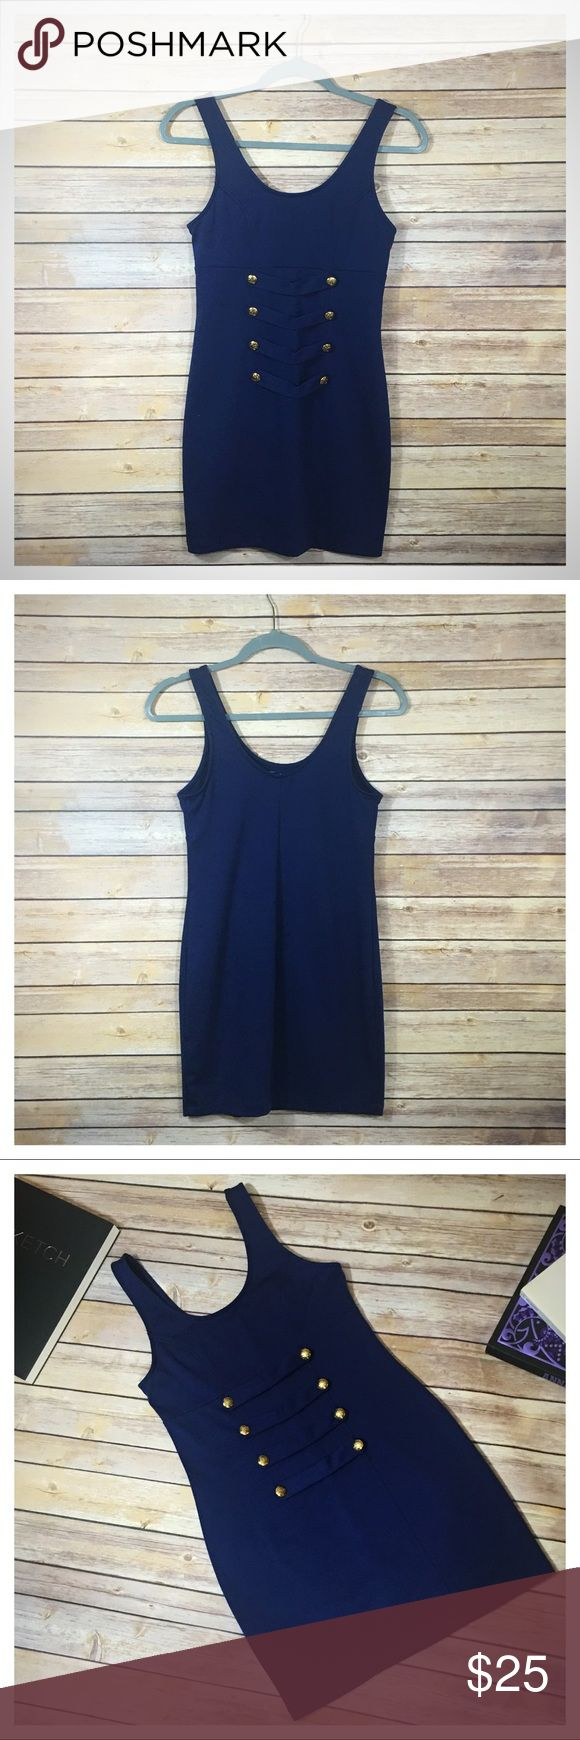 UO Silence + Noise Nautical Bodycon Dress - Blue Urban Outfitters Silence + Noise Nautical Bodycon Dress - Blue  Bodycon dress with nautical inspired gold buttons.  - 70% Polyester, 25% Rayon, 5% Spandex - Handwash Cold, Hang to Dry - Preowned Condition :  No known flaws  No TRADES. Please use offer button to negotiate. Thanks! silence + noise Dresses